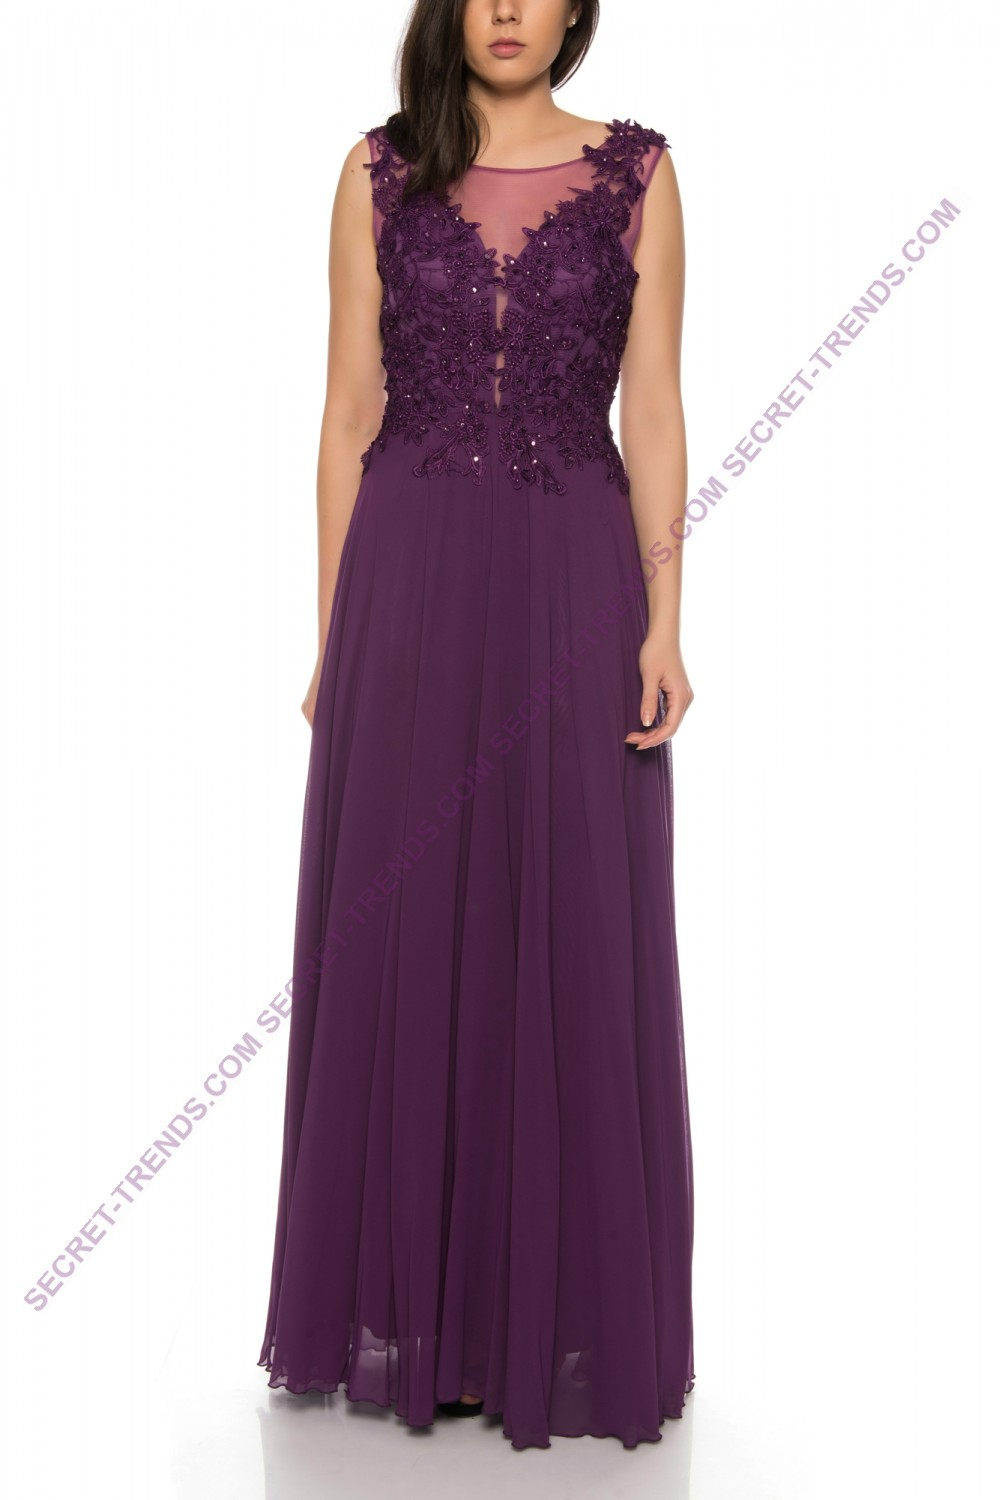 Beautiful Elegant Chiffon Evening Dress A-Line With Top Made of Fine ...